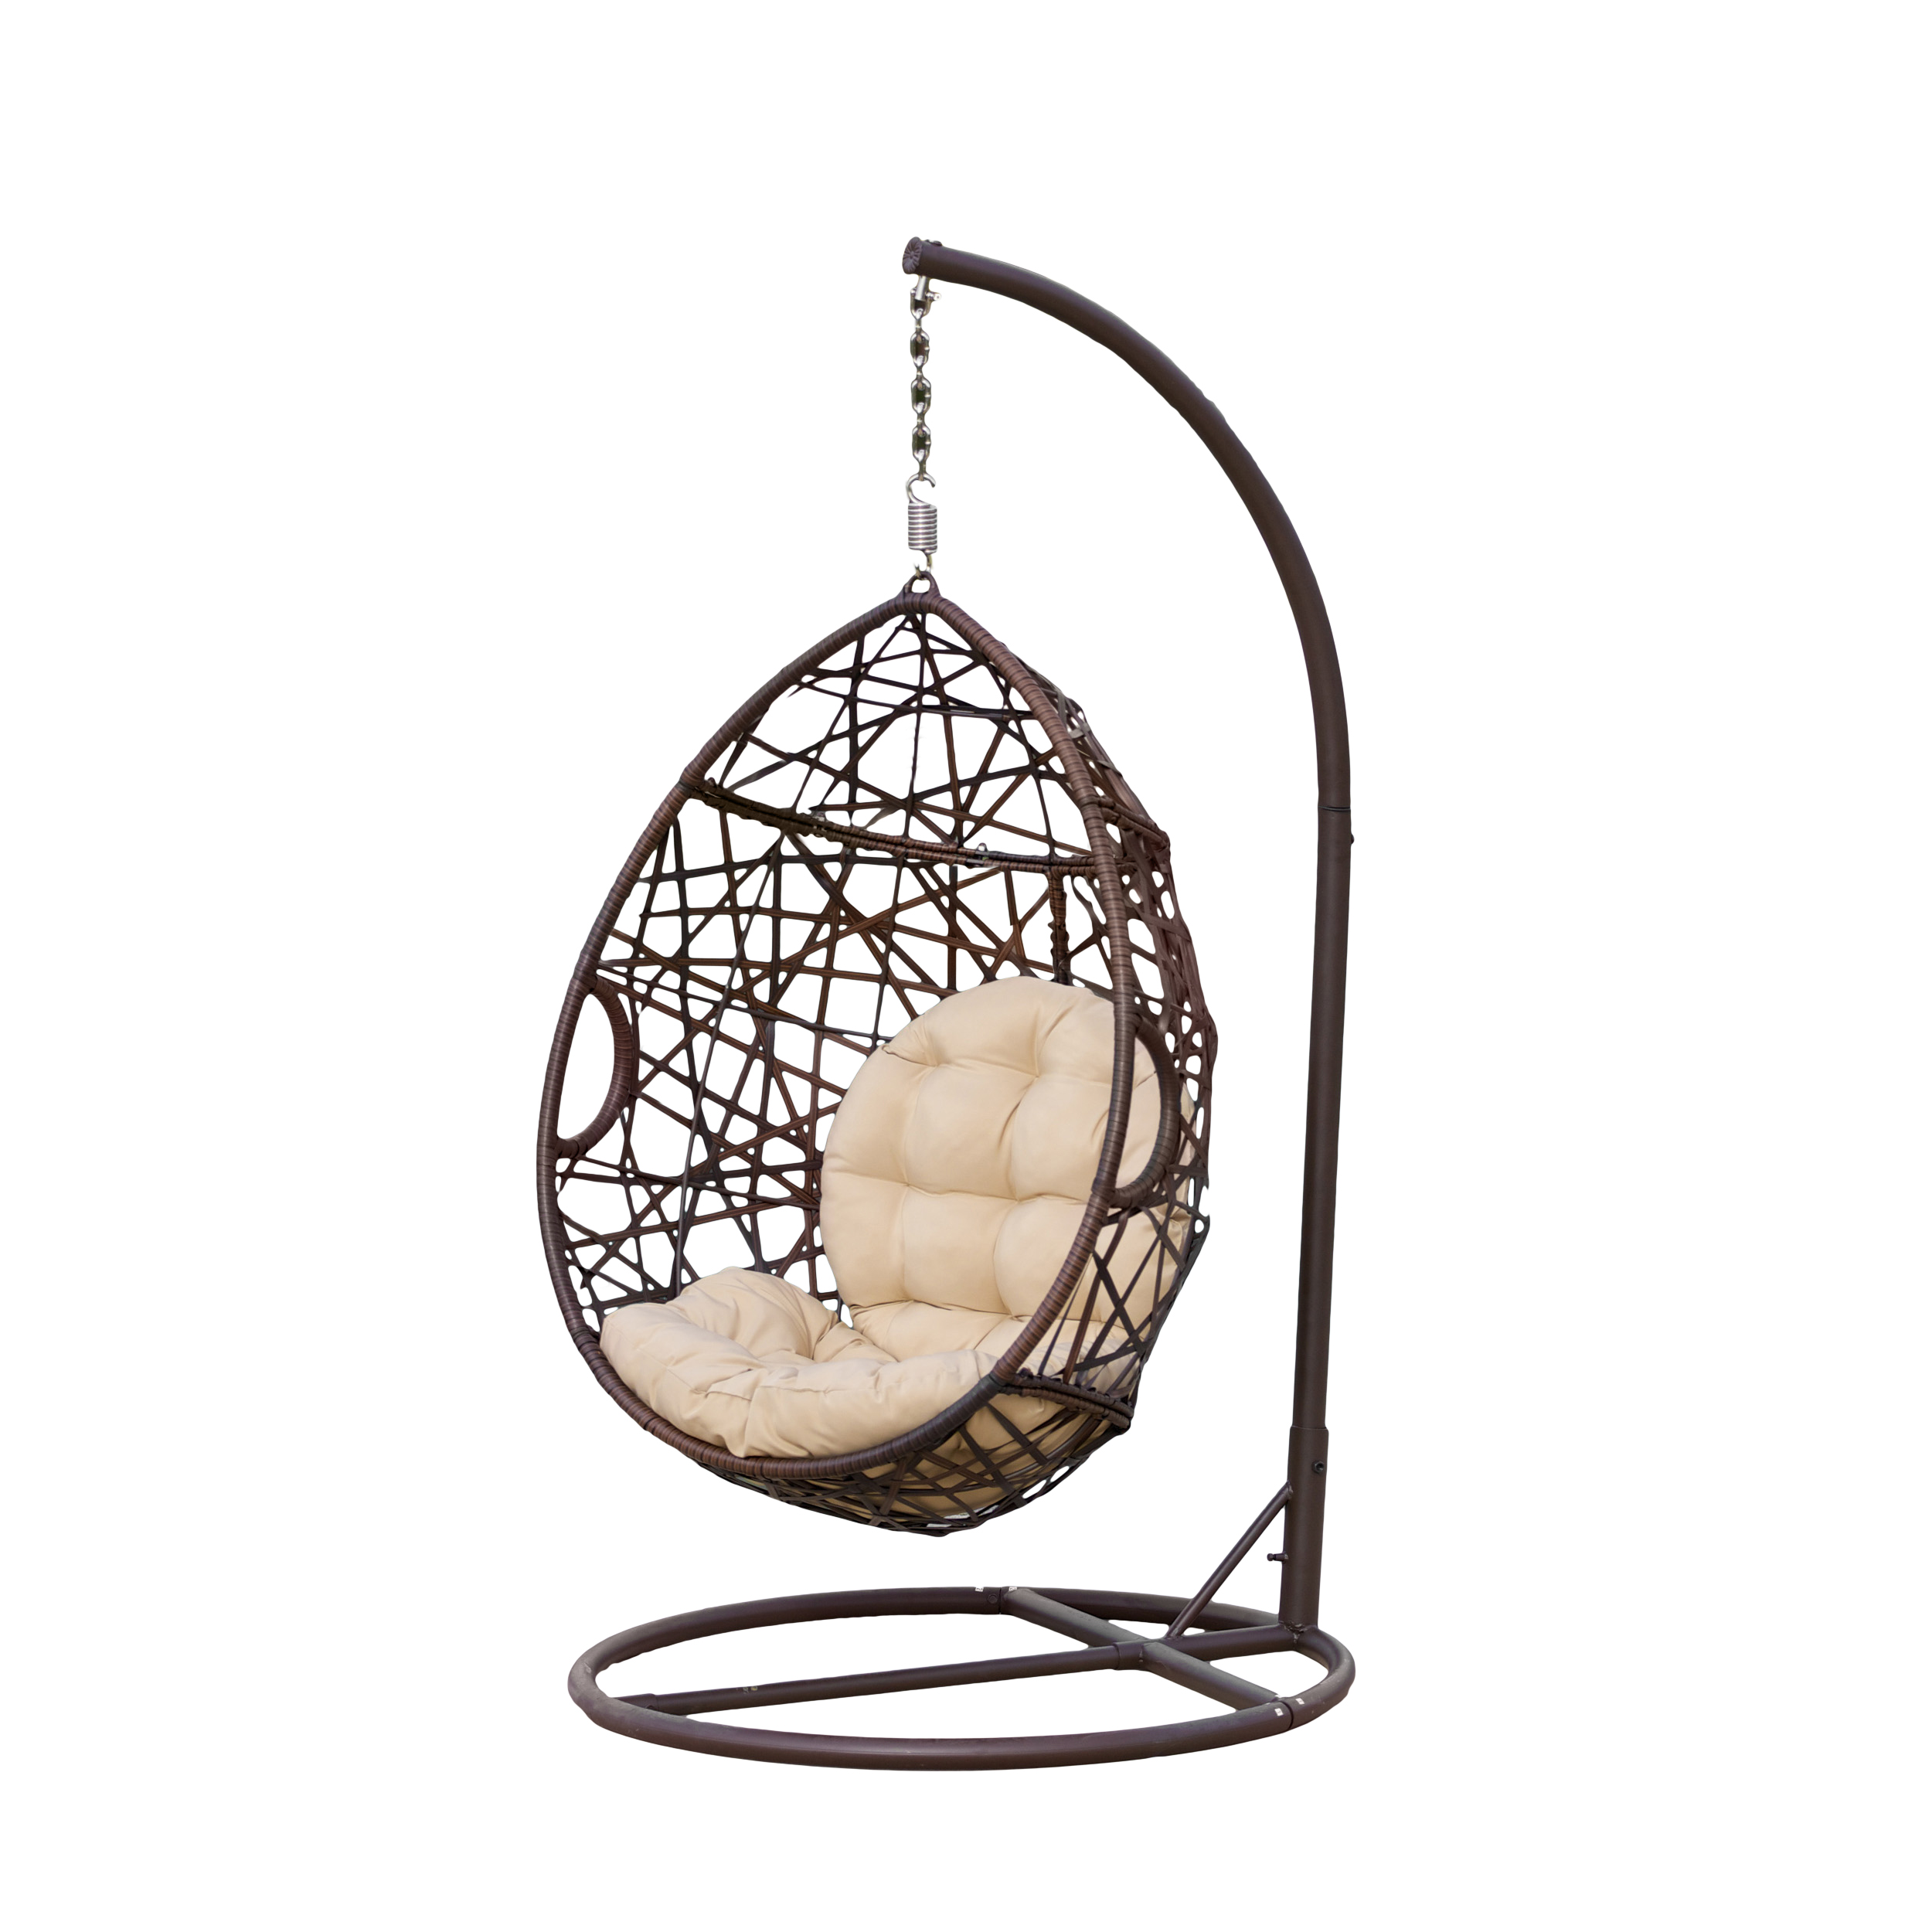 Somoza Outdoor Brown Wicker Tear Drop Basket Chair